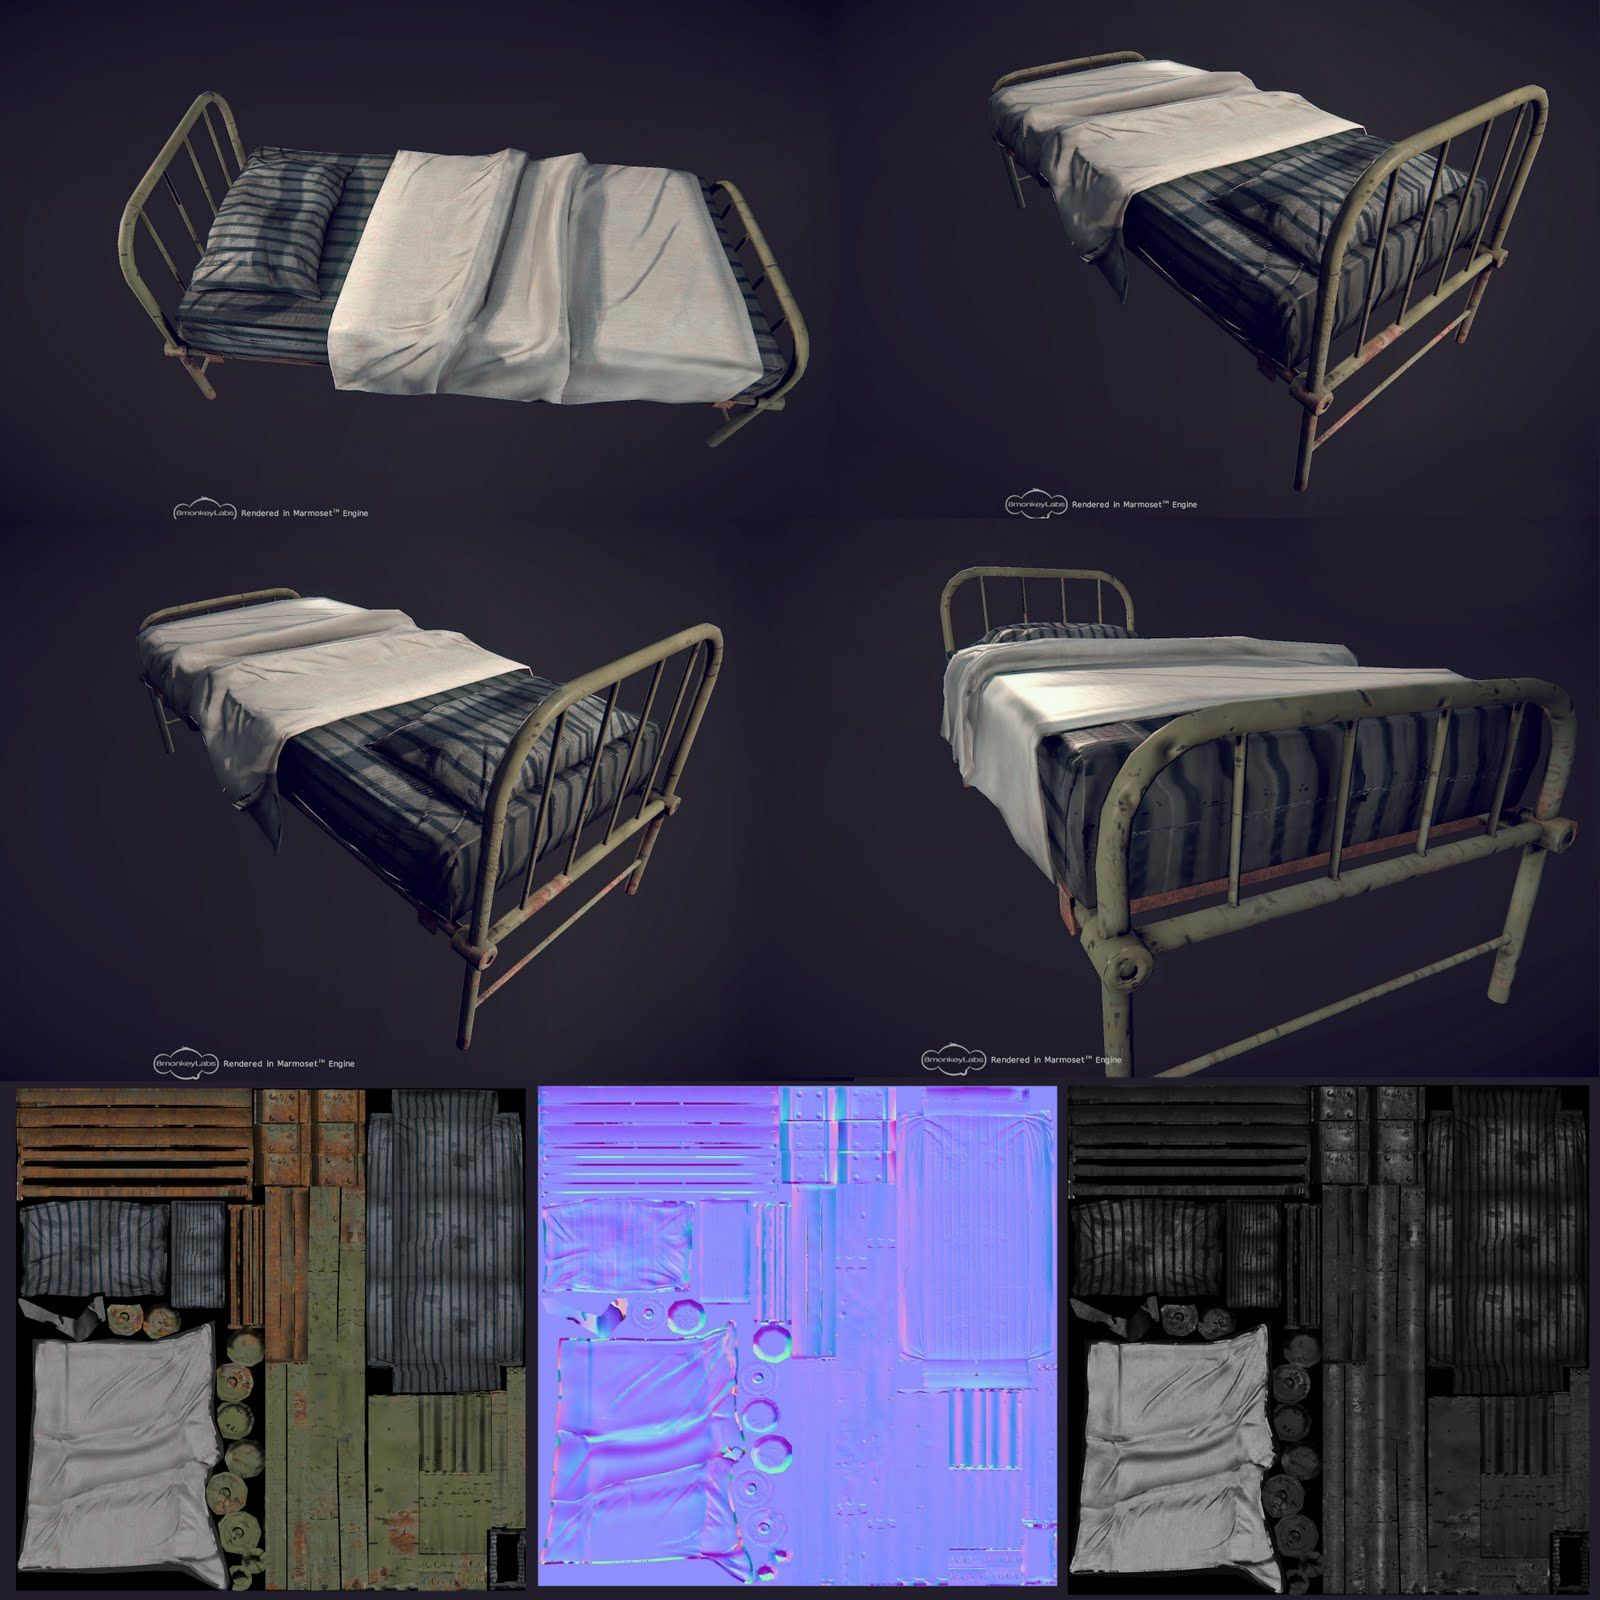 Pritesh Sakhare 3d Artist Hospital Bed In Zbrush モデリング デザイン テクスチャ